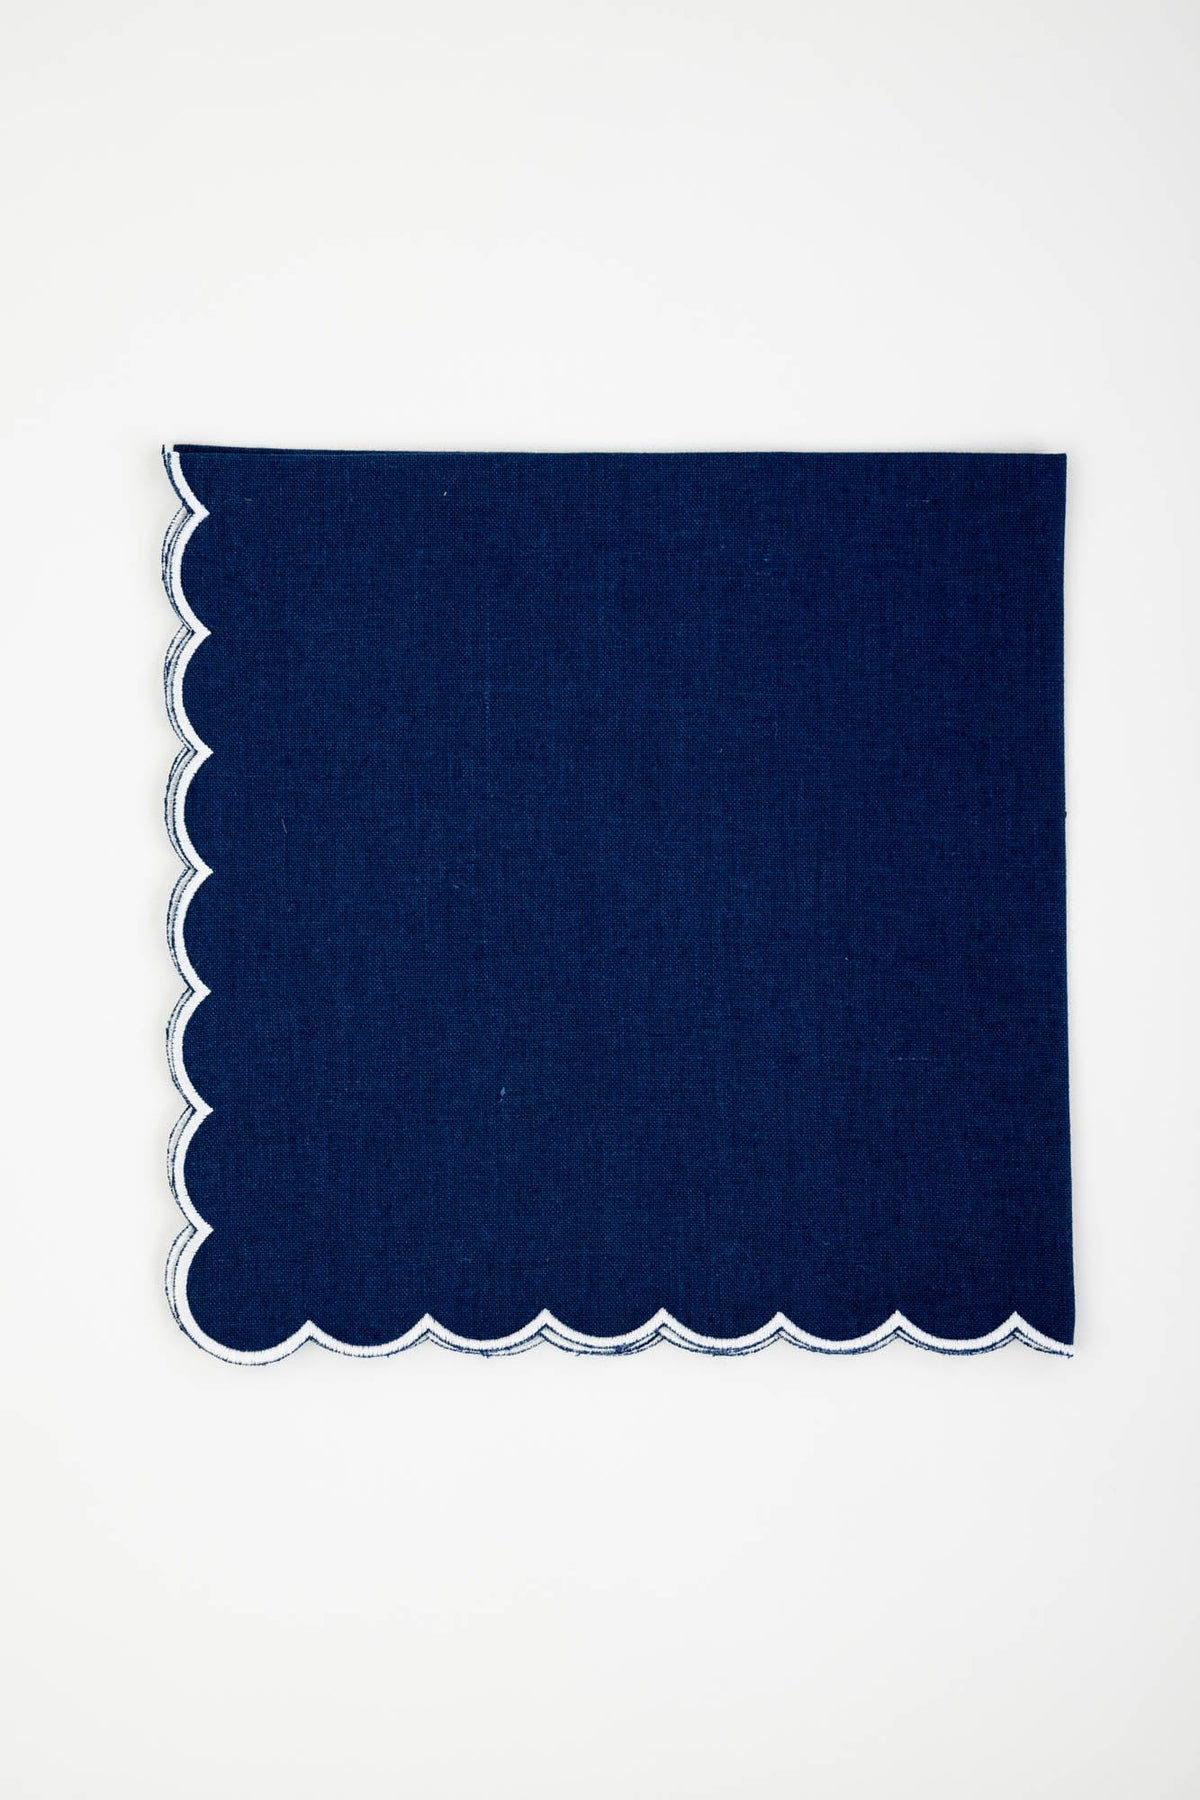 Linen Napkins, Sapphire with White Scallop, Set of 4